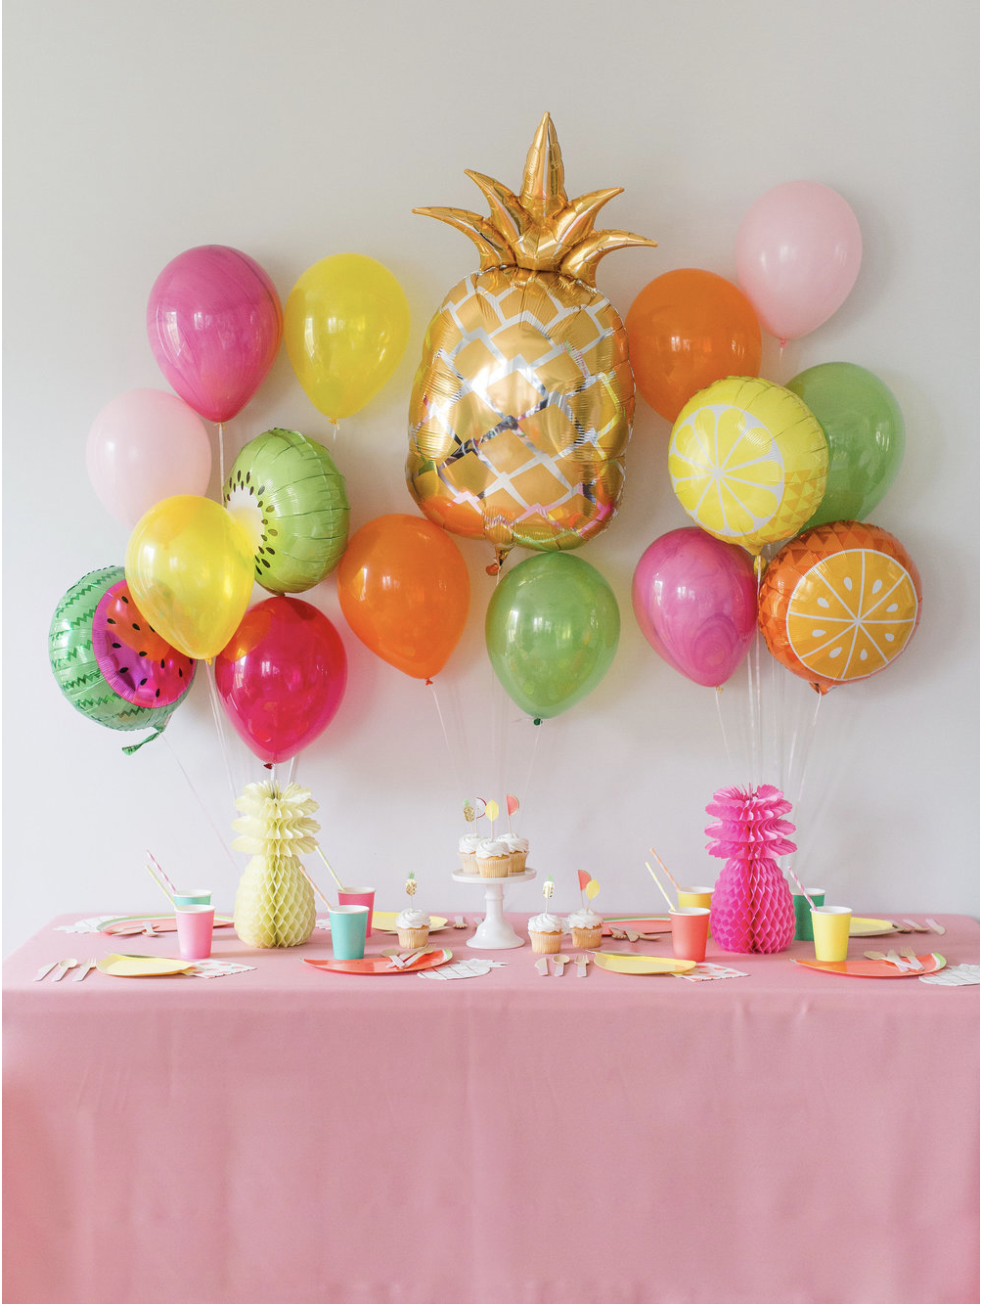 PARTY KITS + DECOR - Your one-stop shop for easy party planning. With pre-made party kits, decor and supplies, it'll be as easy as 1-2-3 to create a memorable event!